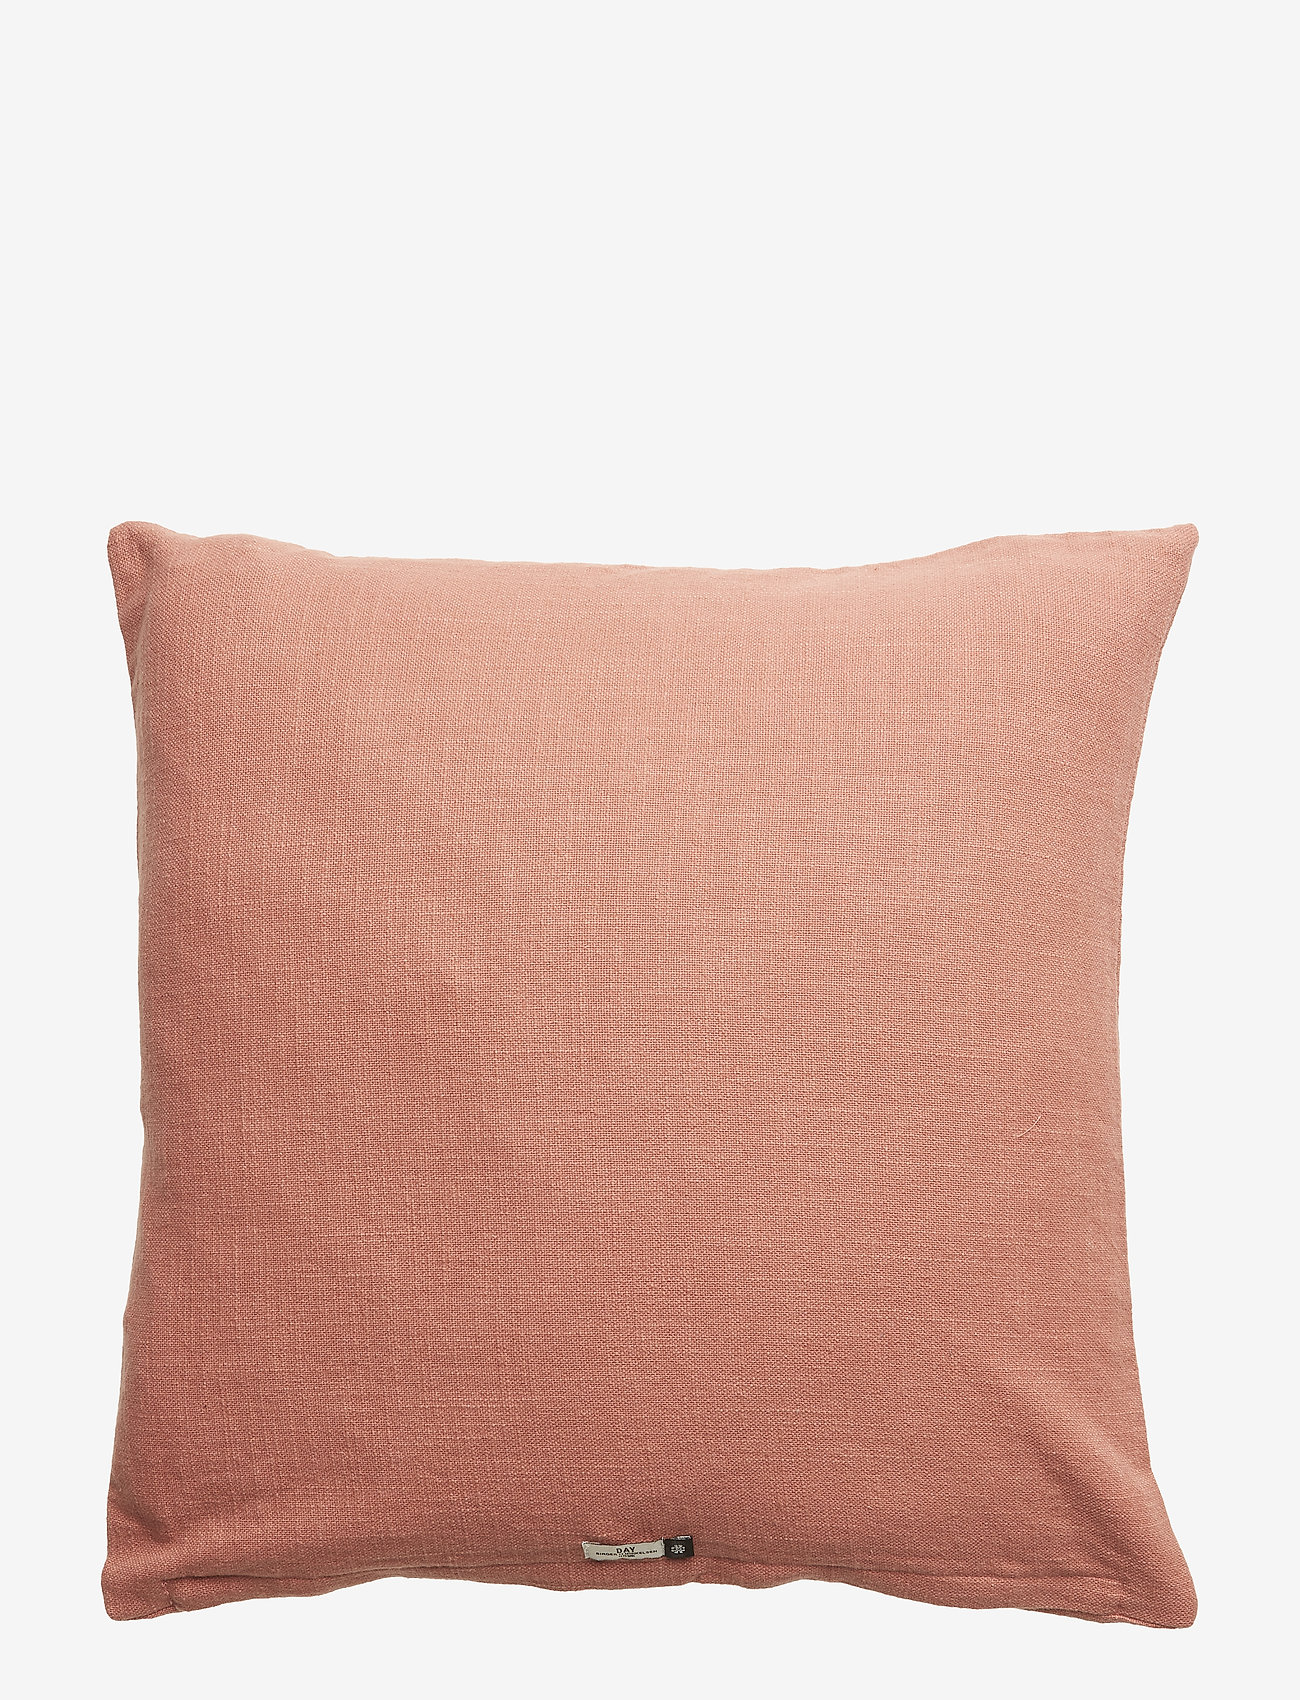 Day Home Lets Get Closer Cushion Cover - Salon